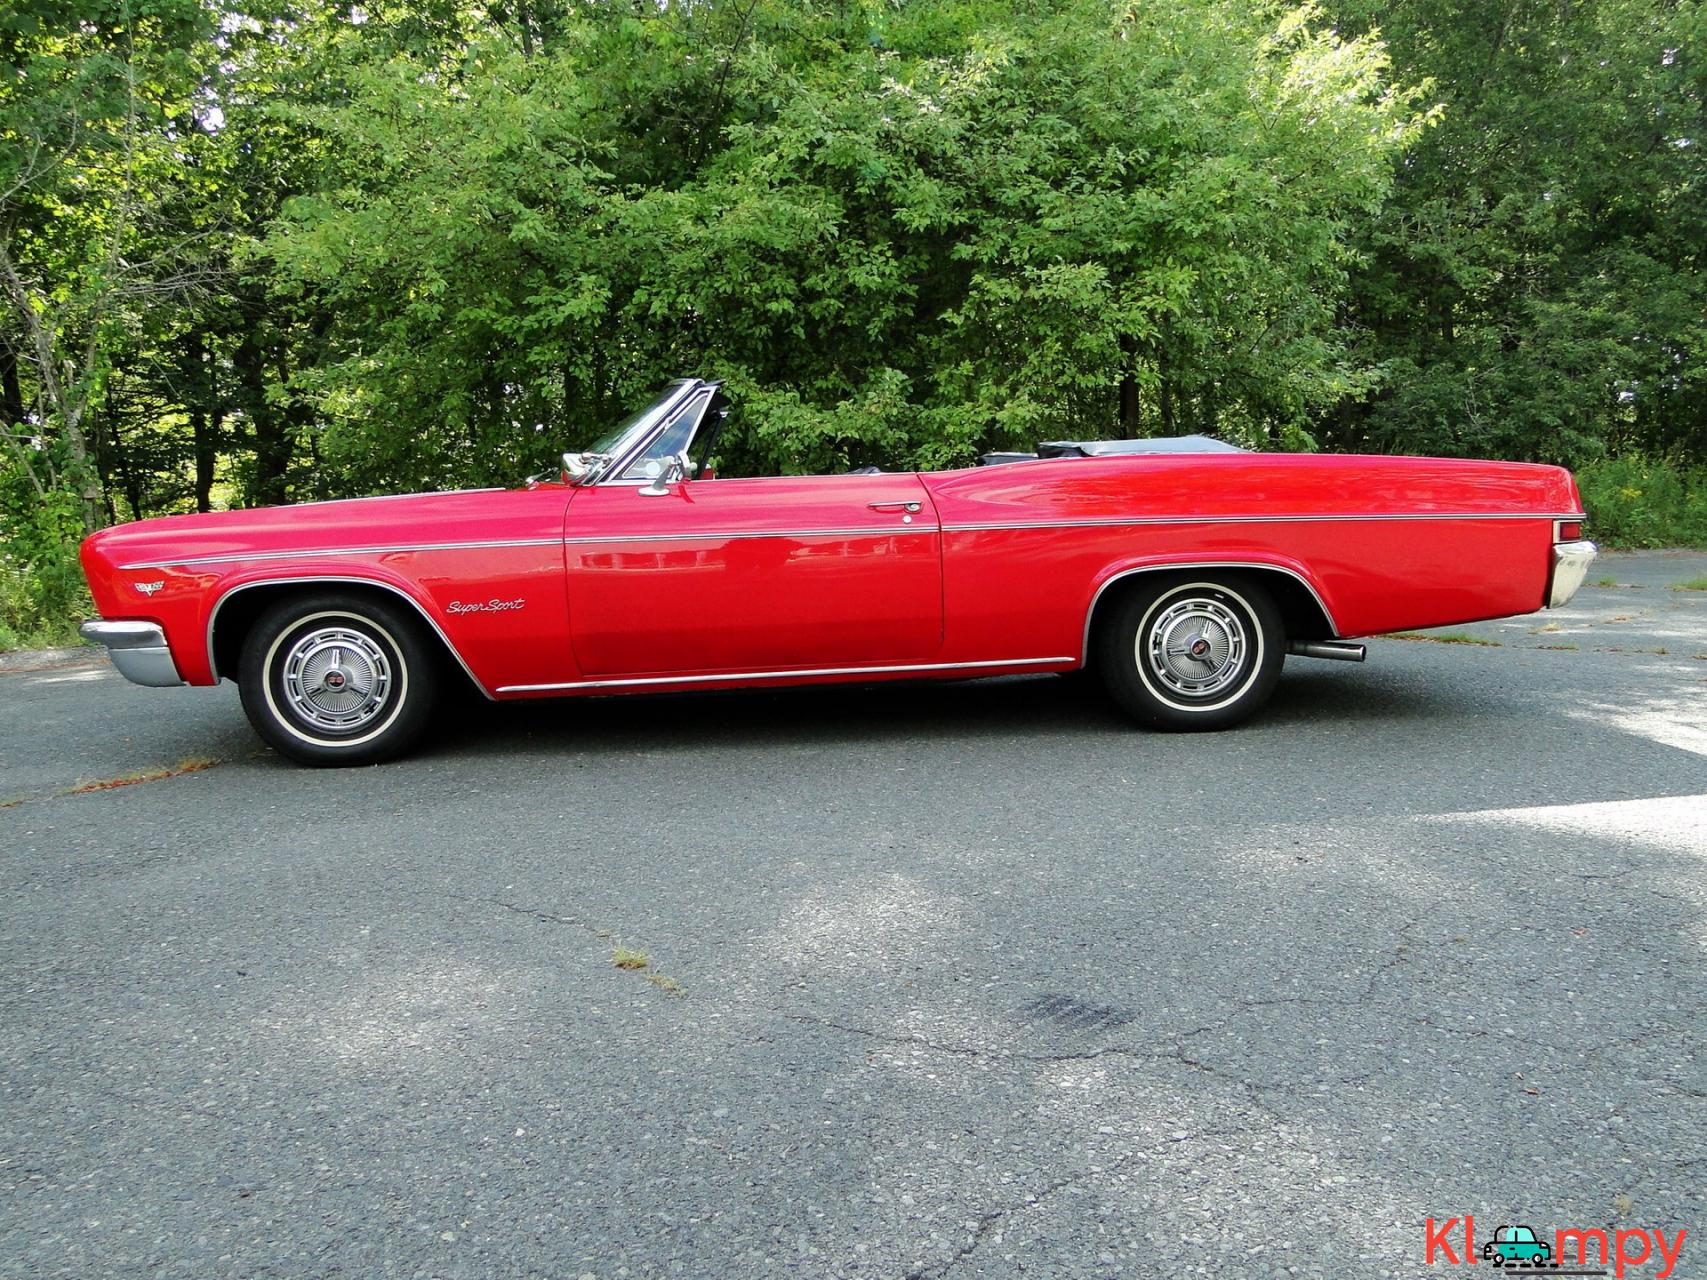 1966 Chevrolet Impala SS Convertible Regal Red V8 - 4/23